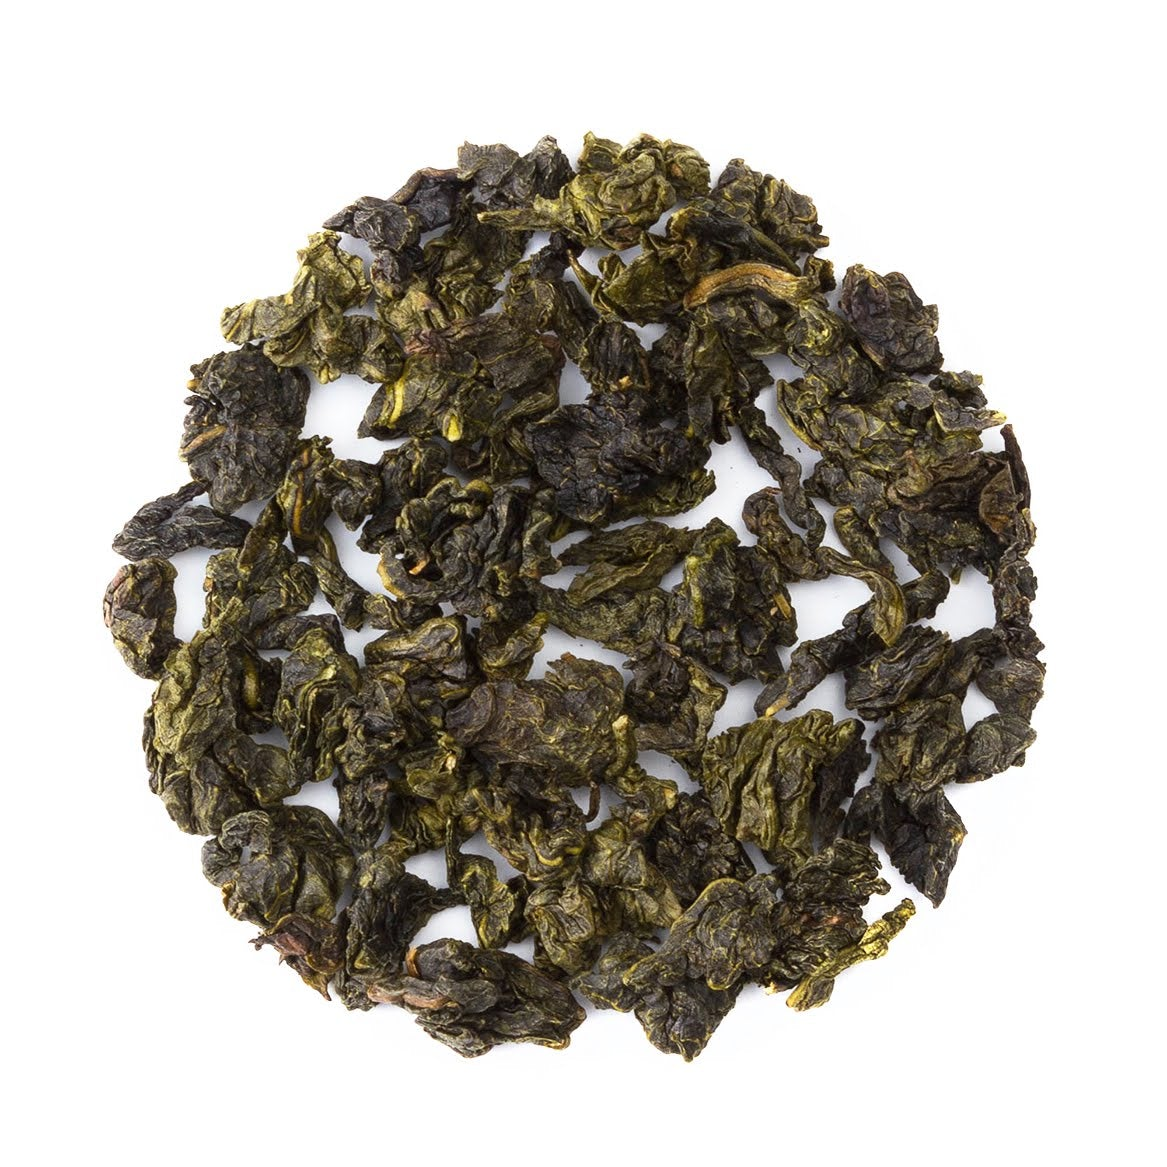 Loose Leaf Oolong Tea - Organic Oolong Tea - Premium Oolong Tea - Heavenly Tea Leaves